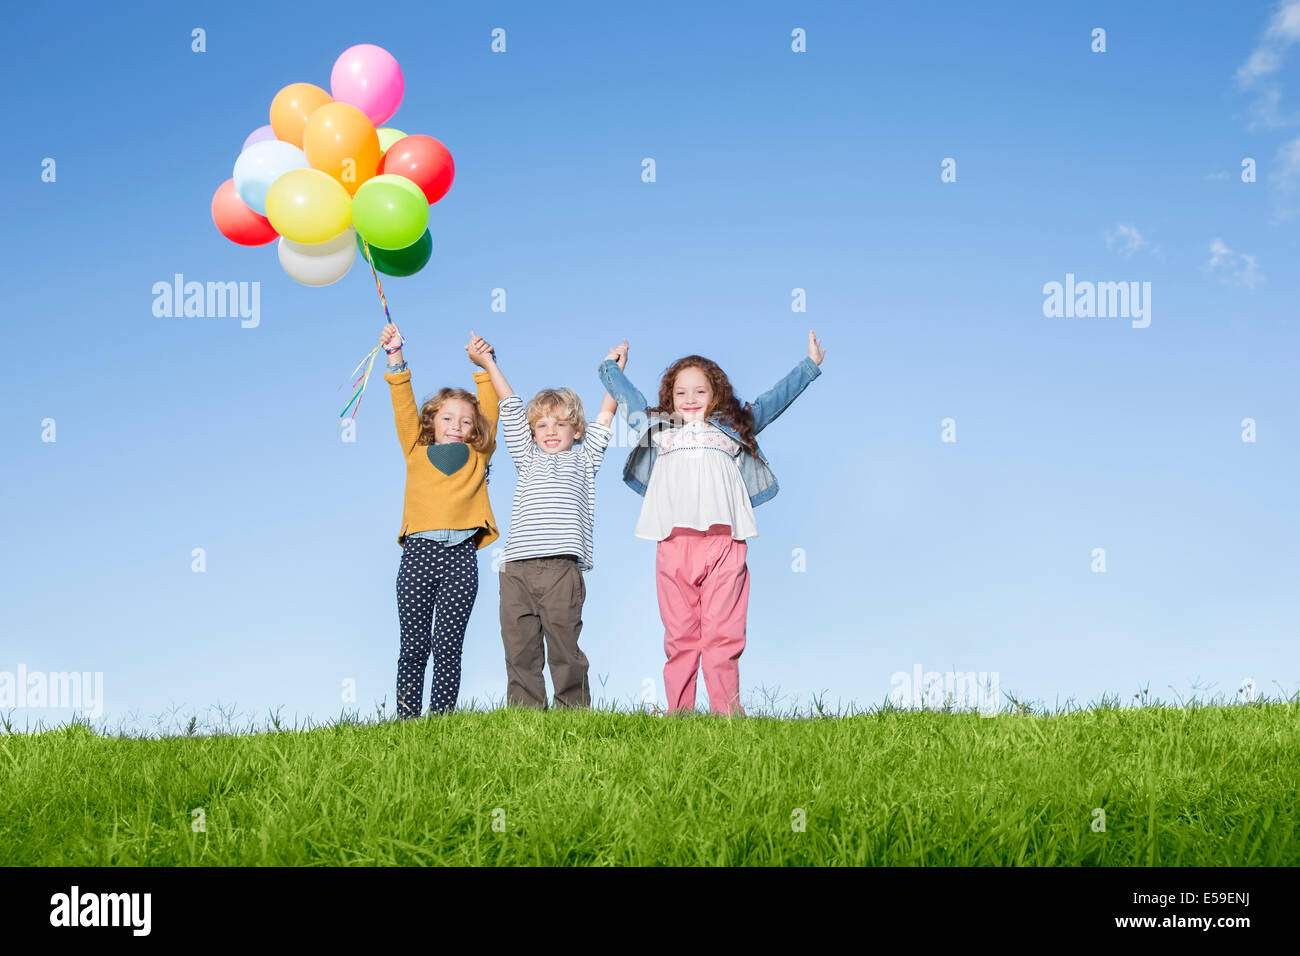 Children with balloons cheering on grassy hill - Stock Image